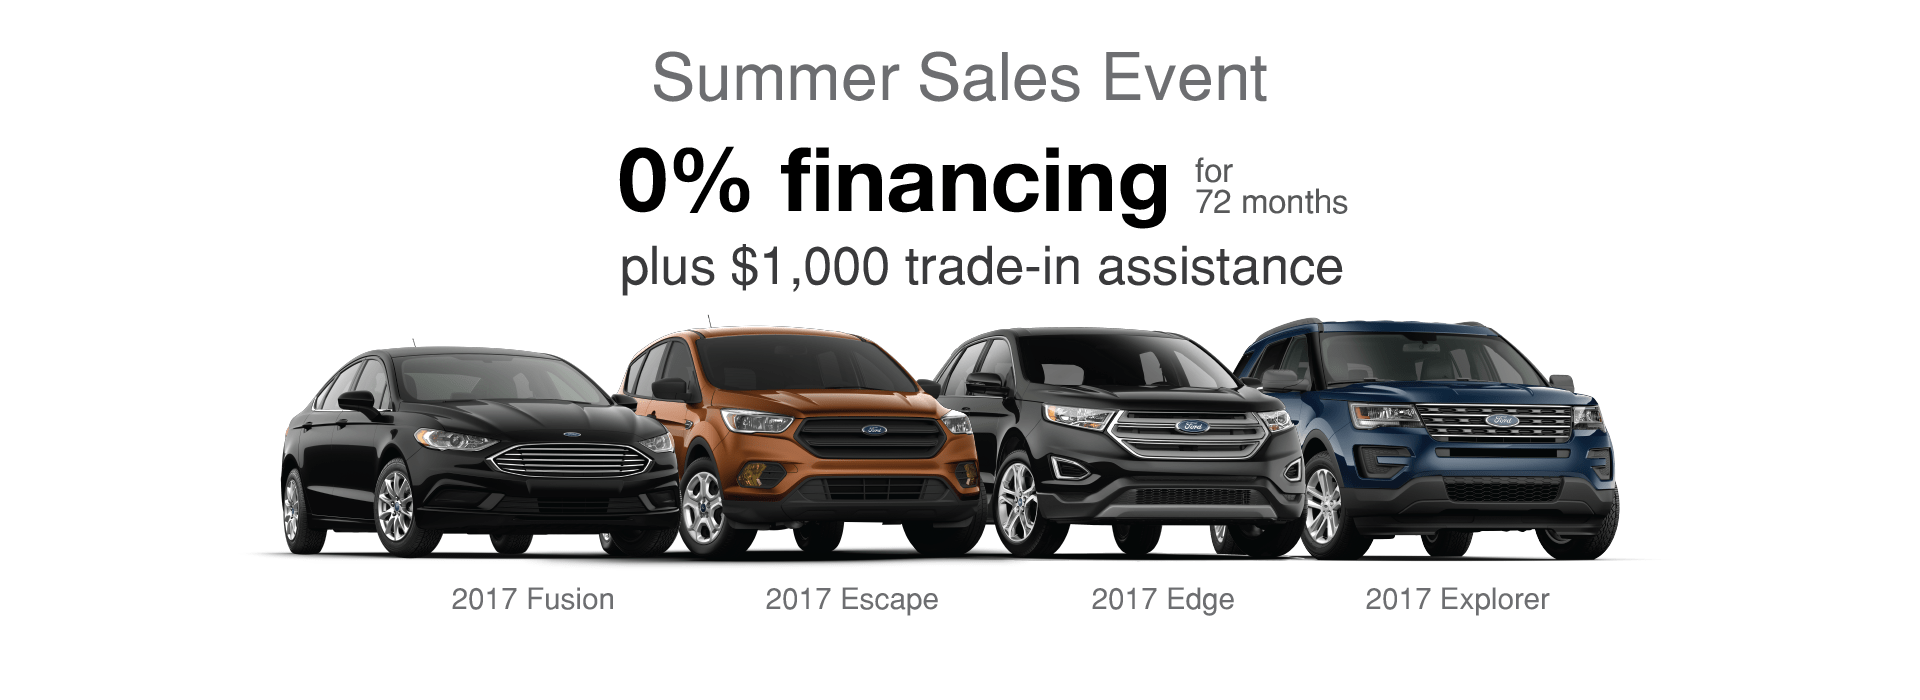 Big Savings on 2017 Mustang, Fusion, Escape and Explorer